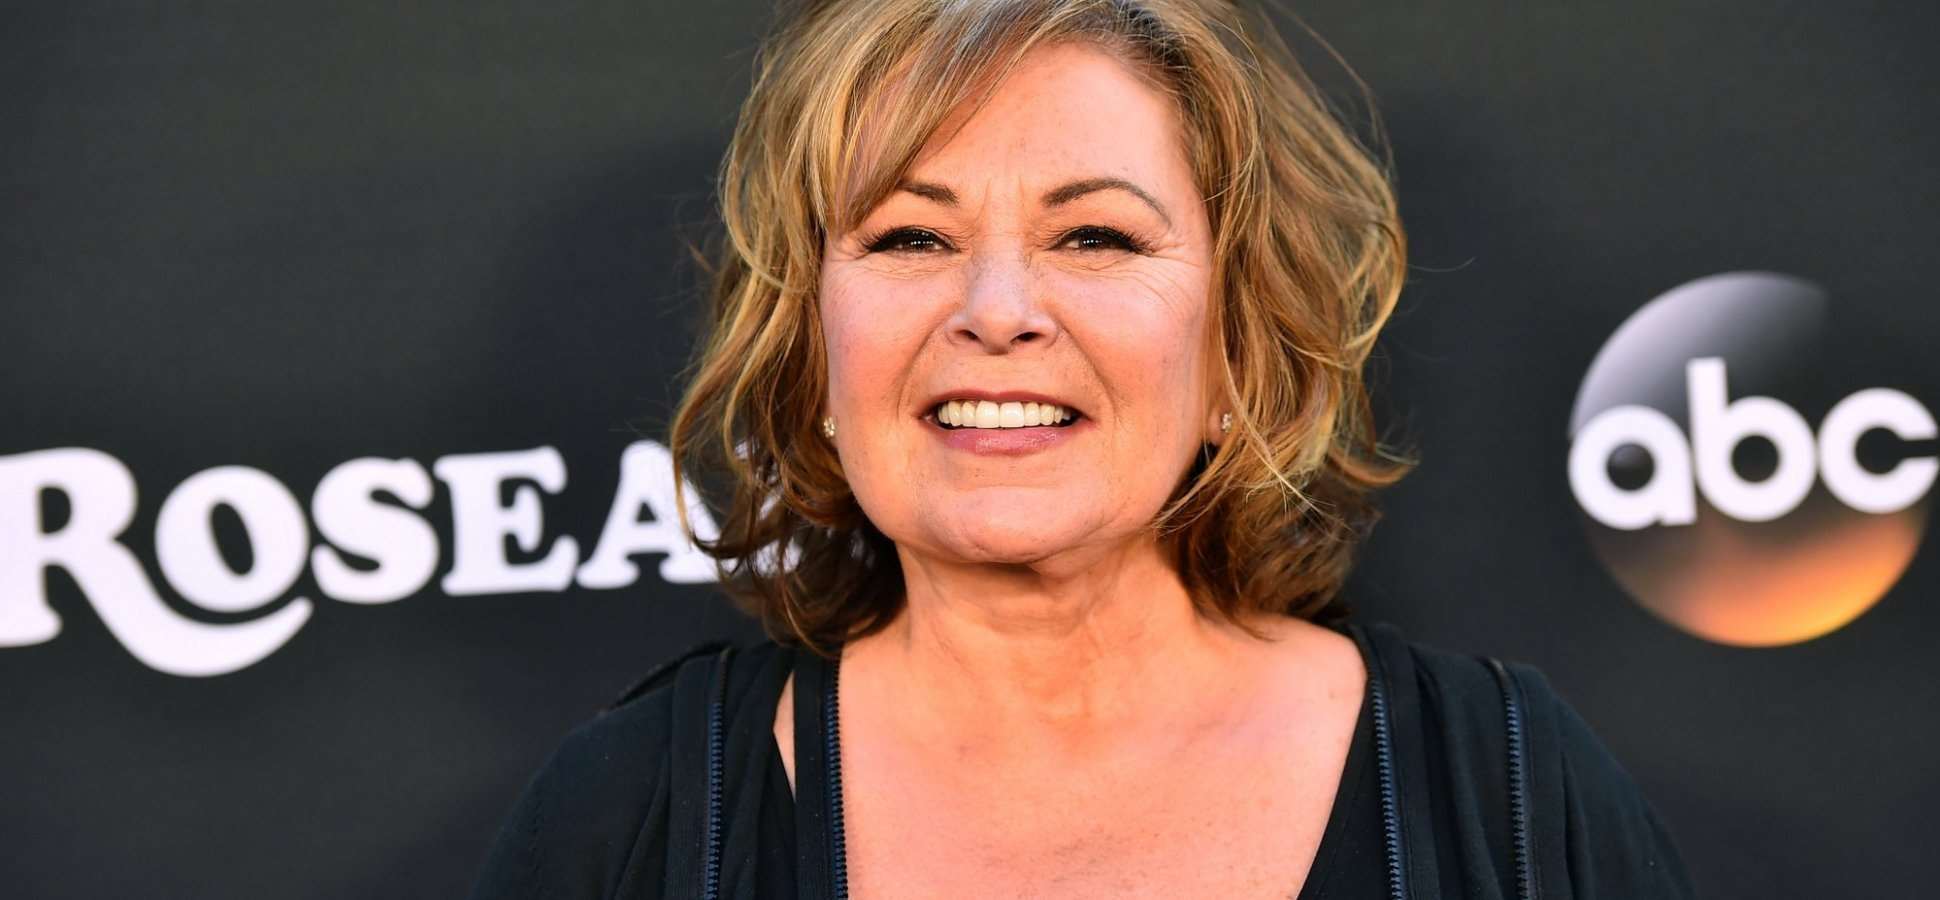 6 Steps to Dealing With Online Trolls, Courtesy of Ambien's Maker and Roseanne Barr